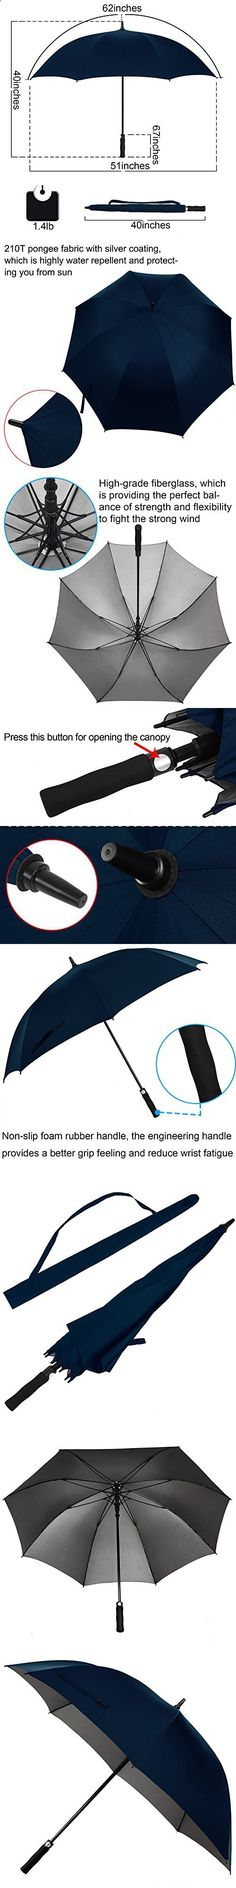 Rainlax 62 inch Oversize Canopy Automatic Open Large Outdoor Windproof Golf Umbrella 210T Teflon RainWind Repellent UPF 50  Sun Protection Umbrellas (Navy Blue)